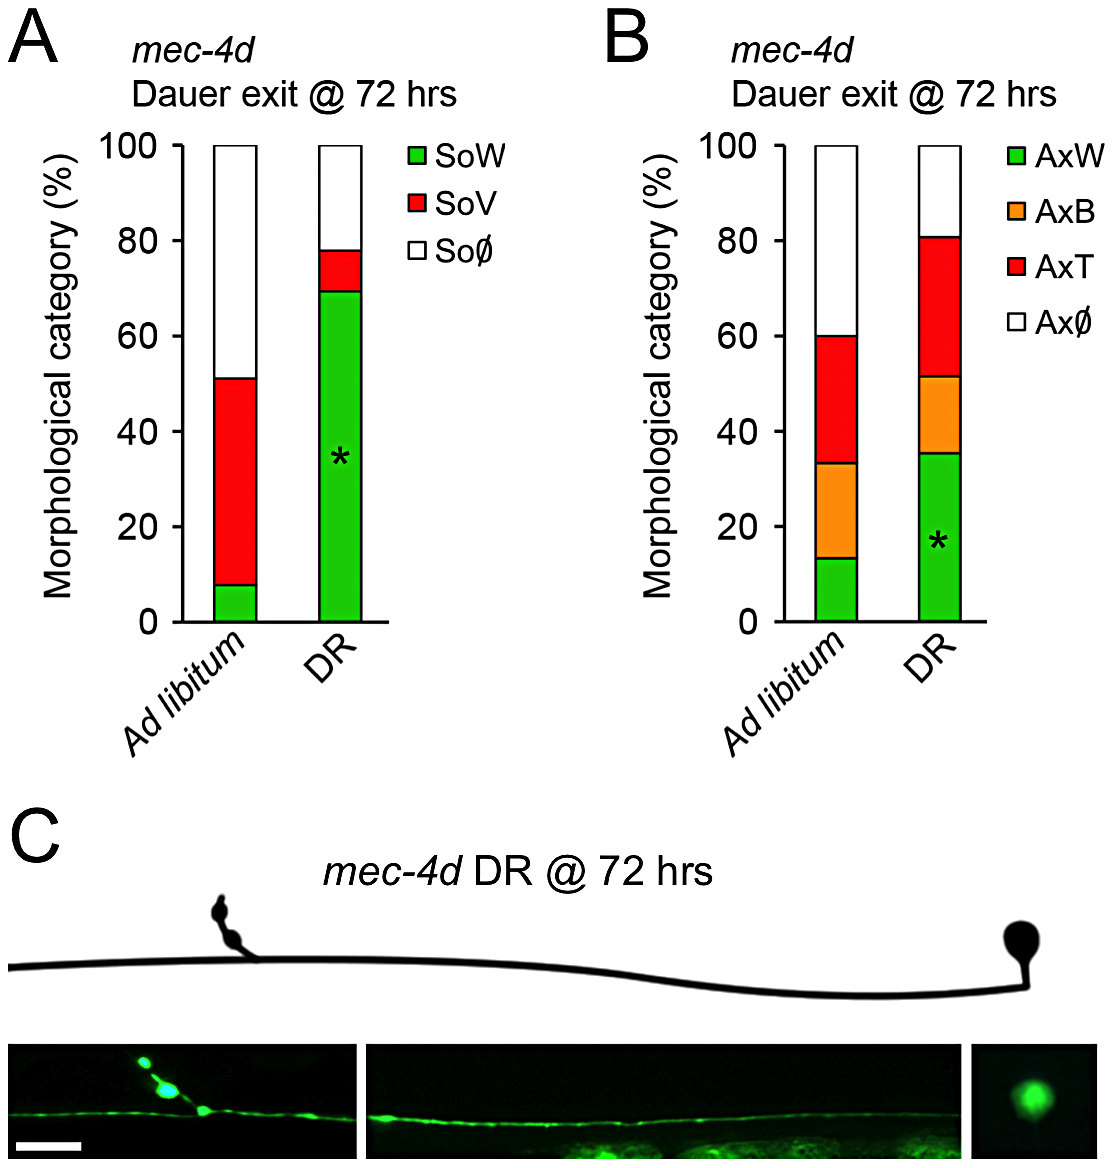 Dietary restriction inhibits <i>mec-4d</i>–dependent neuronal degeneration in <i>C. elegans</i>.